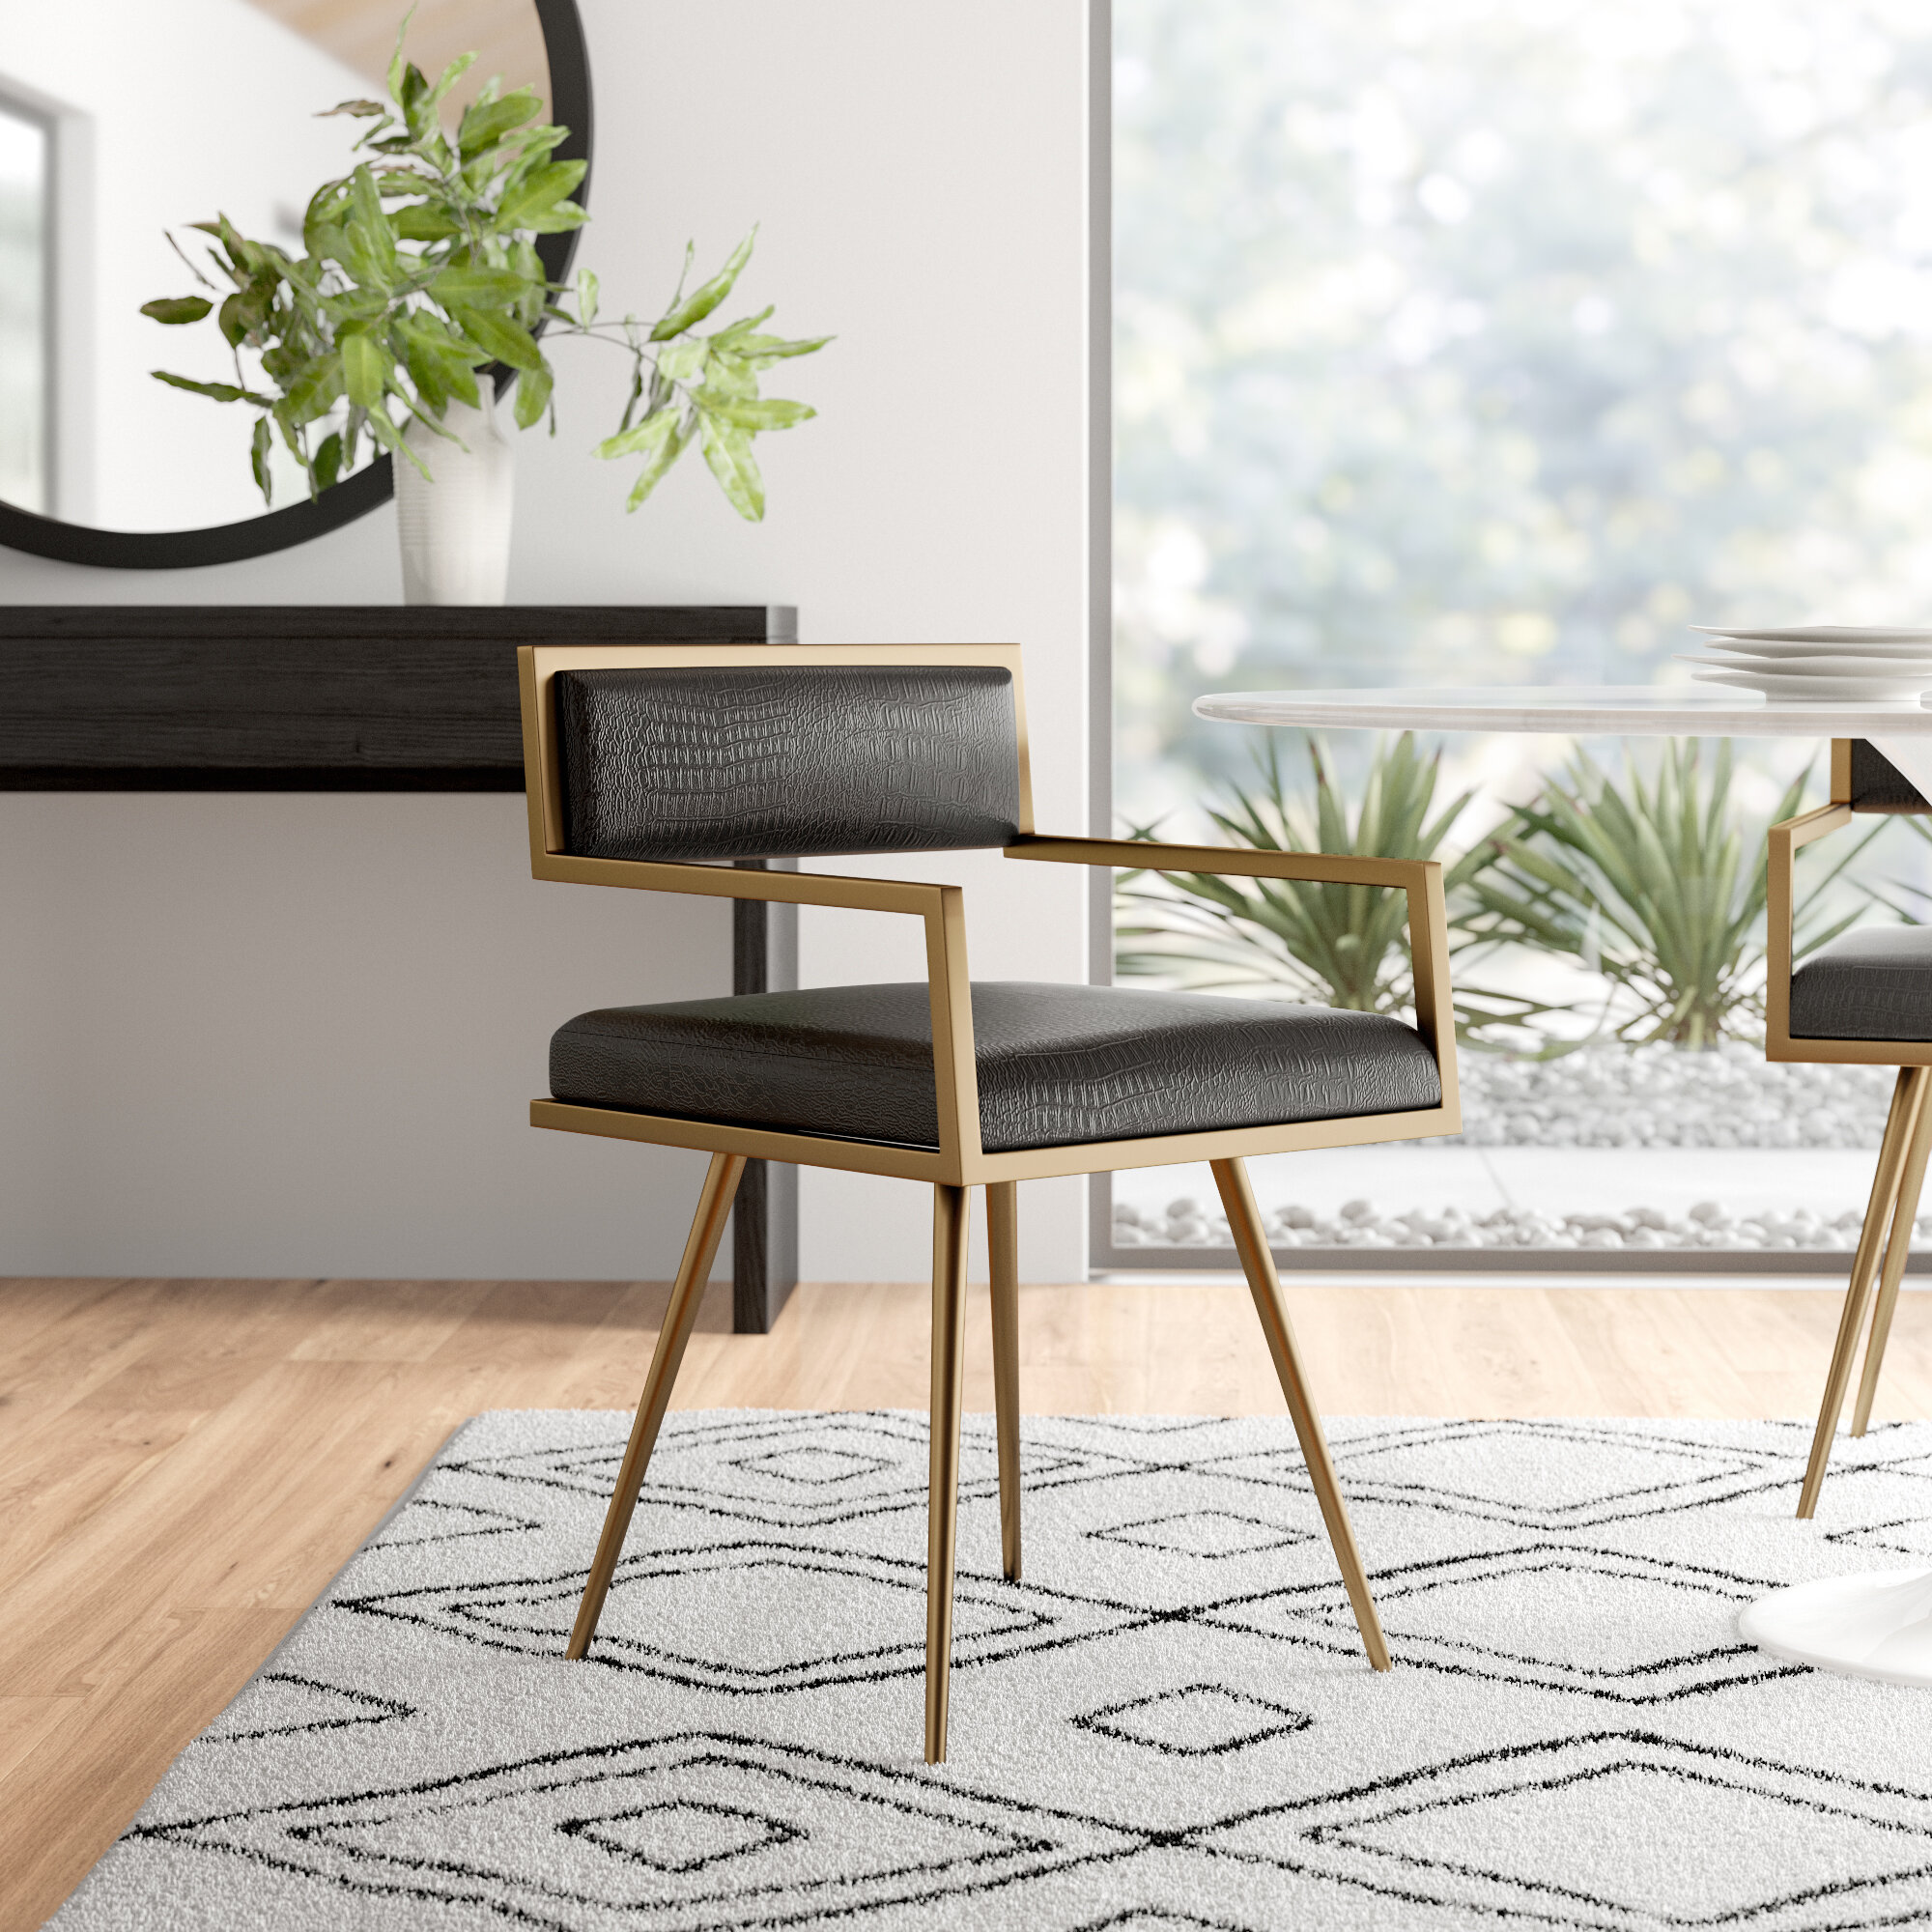 Swell Como Upholstered Dining Chair Andrewgaddart Wooden Chair Designs For Living Room Andrewgaddartcom